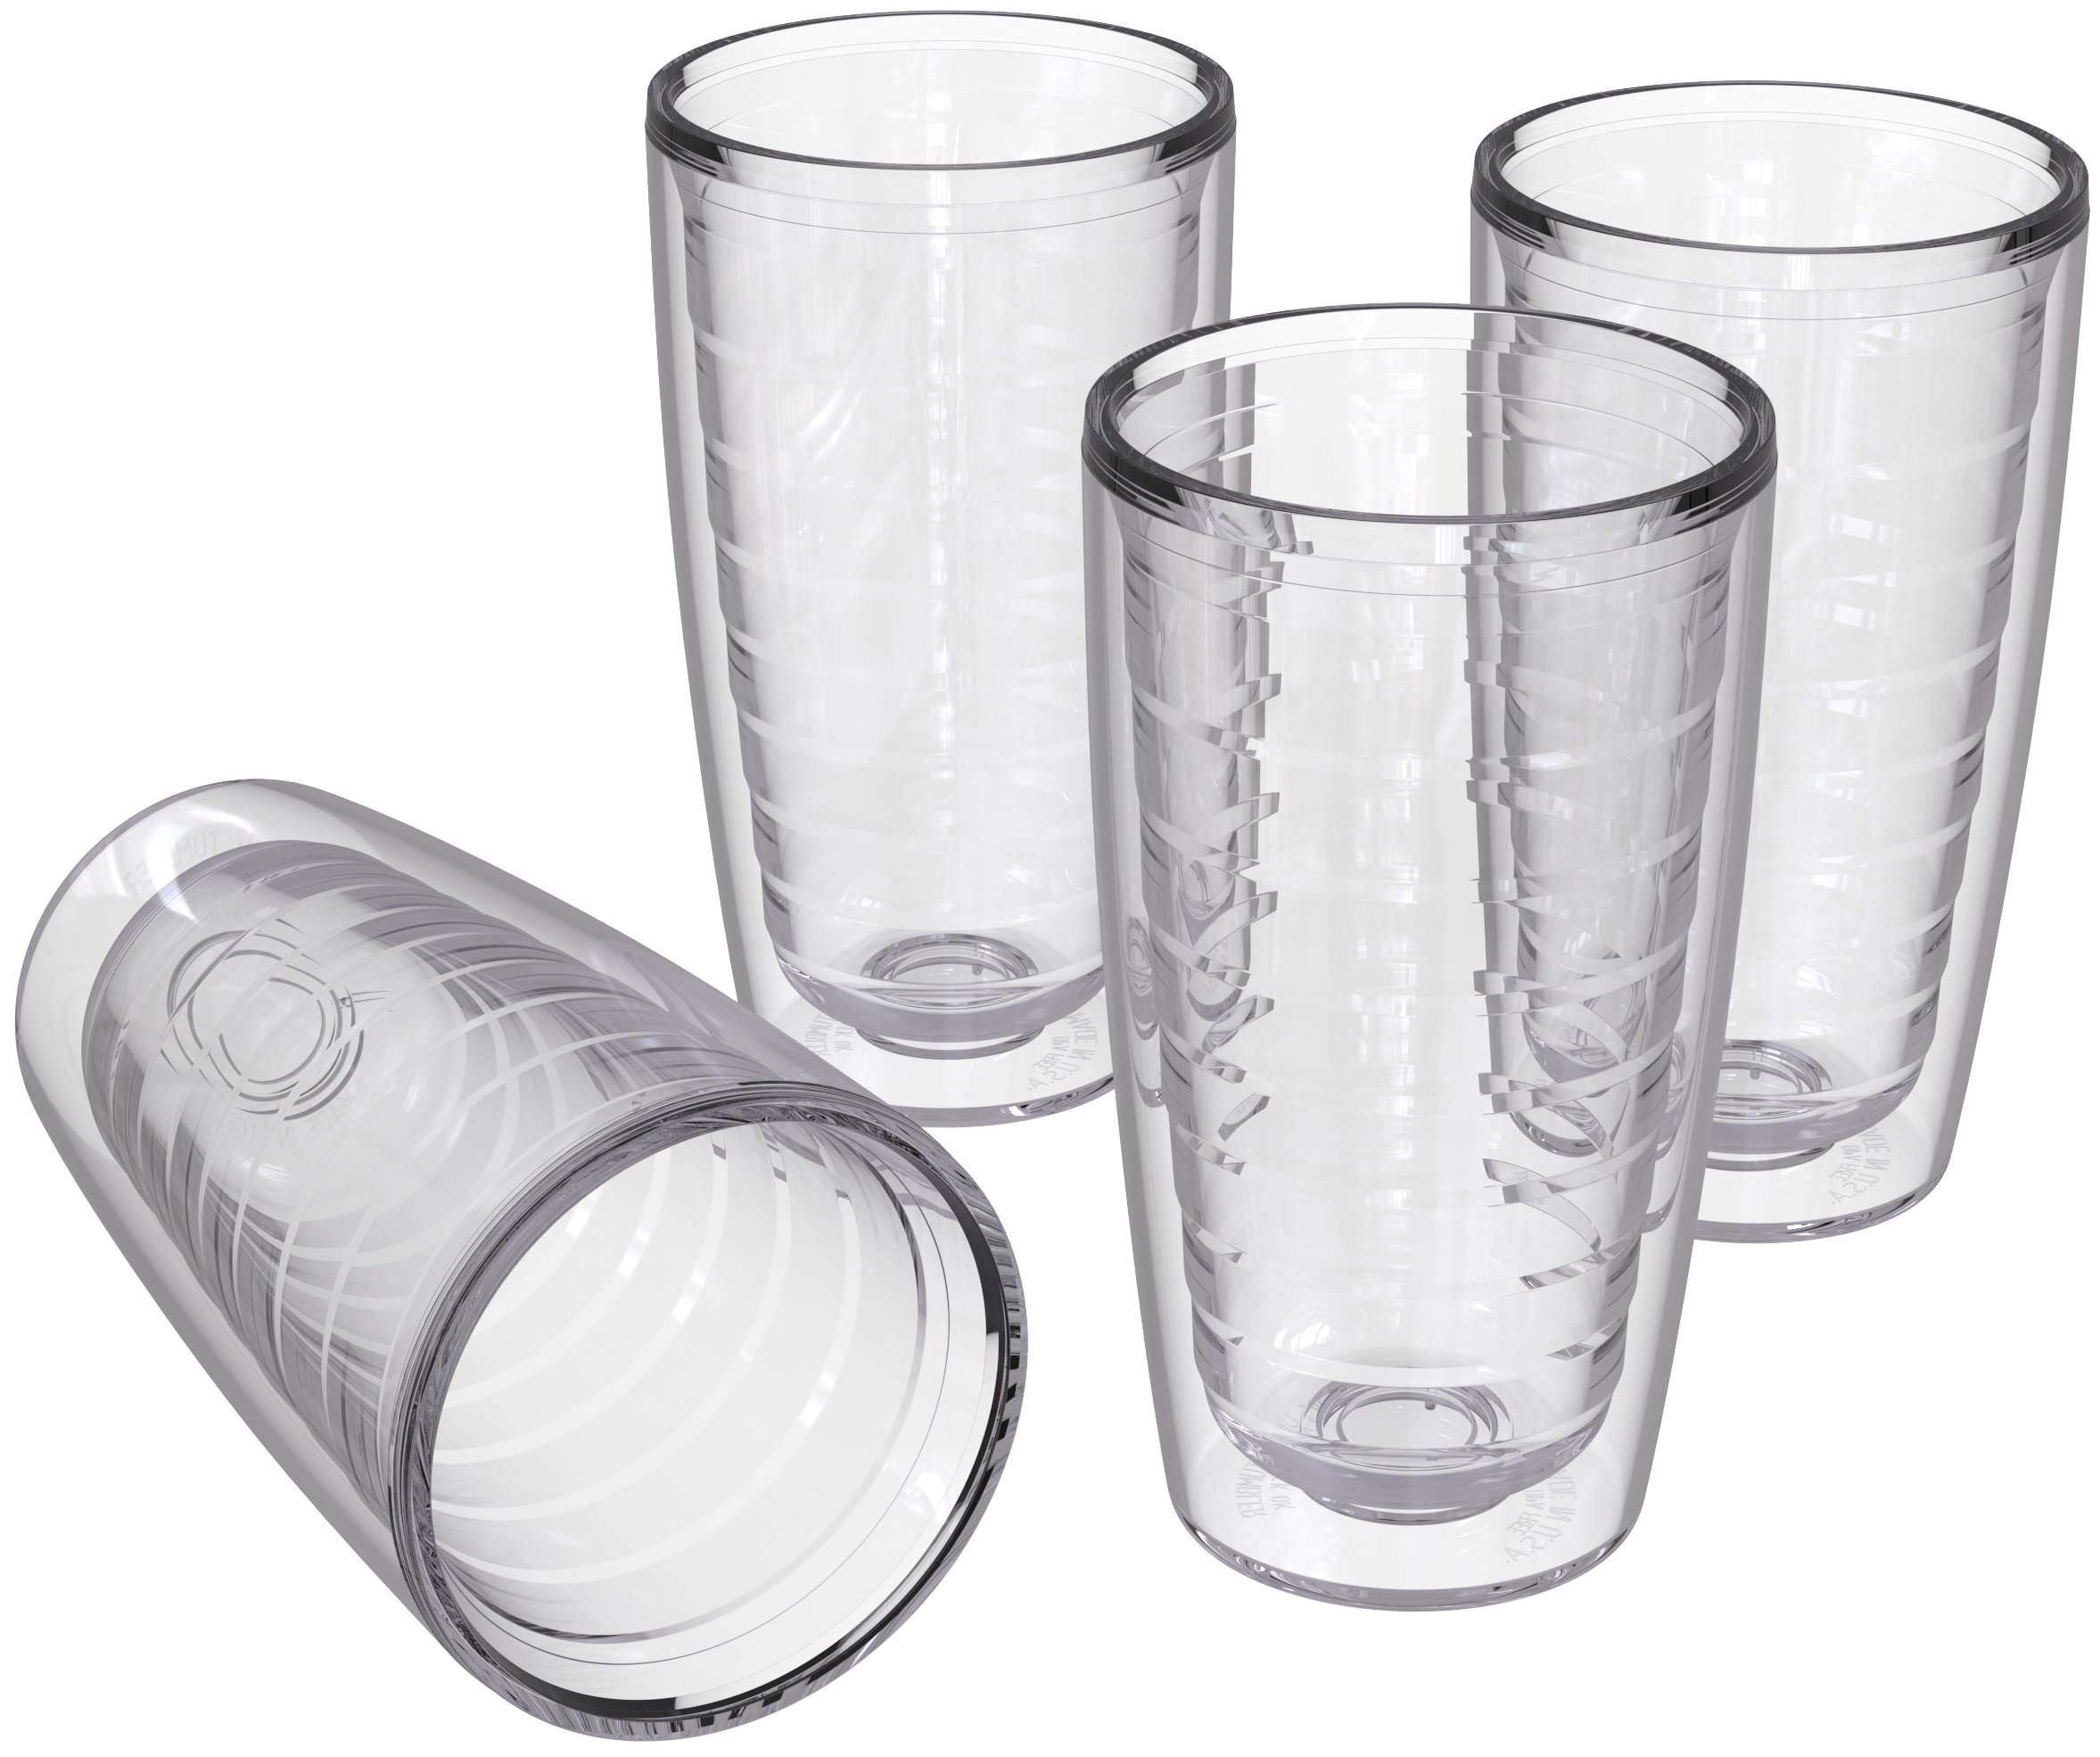 4-pack Insulated Tumblers 16 Ounce - BPA-Free - Made in USA - Clear (16oz Insulated Cups) by Homestead Choice